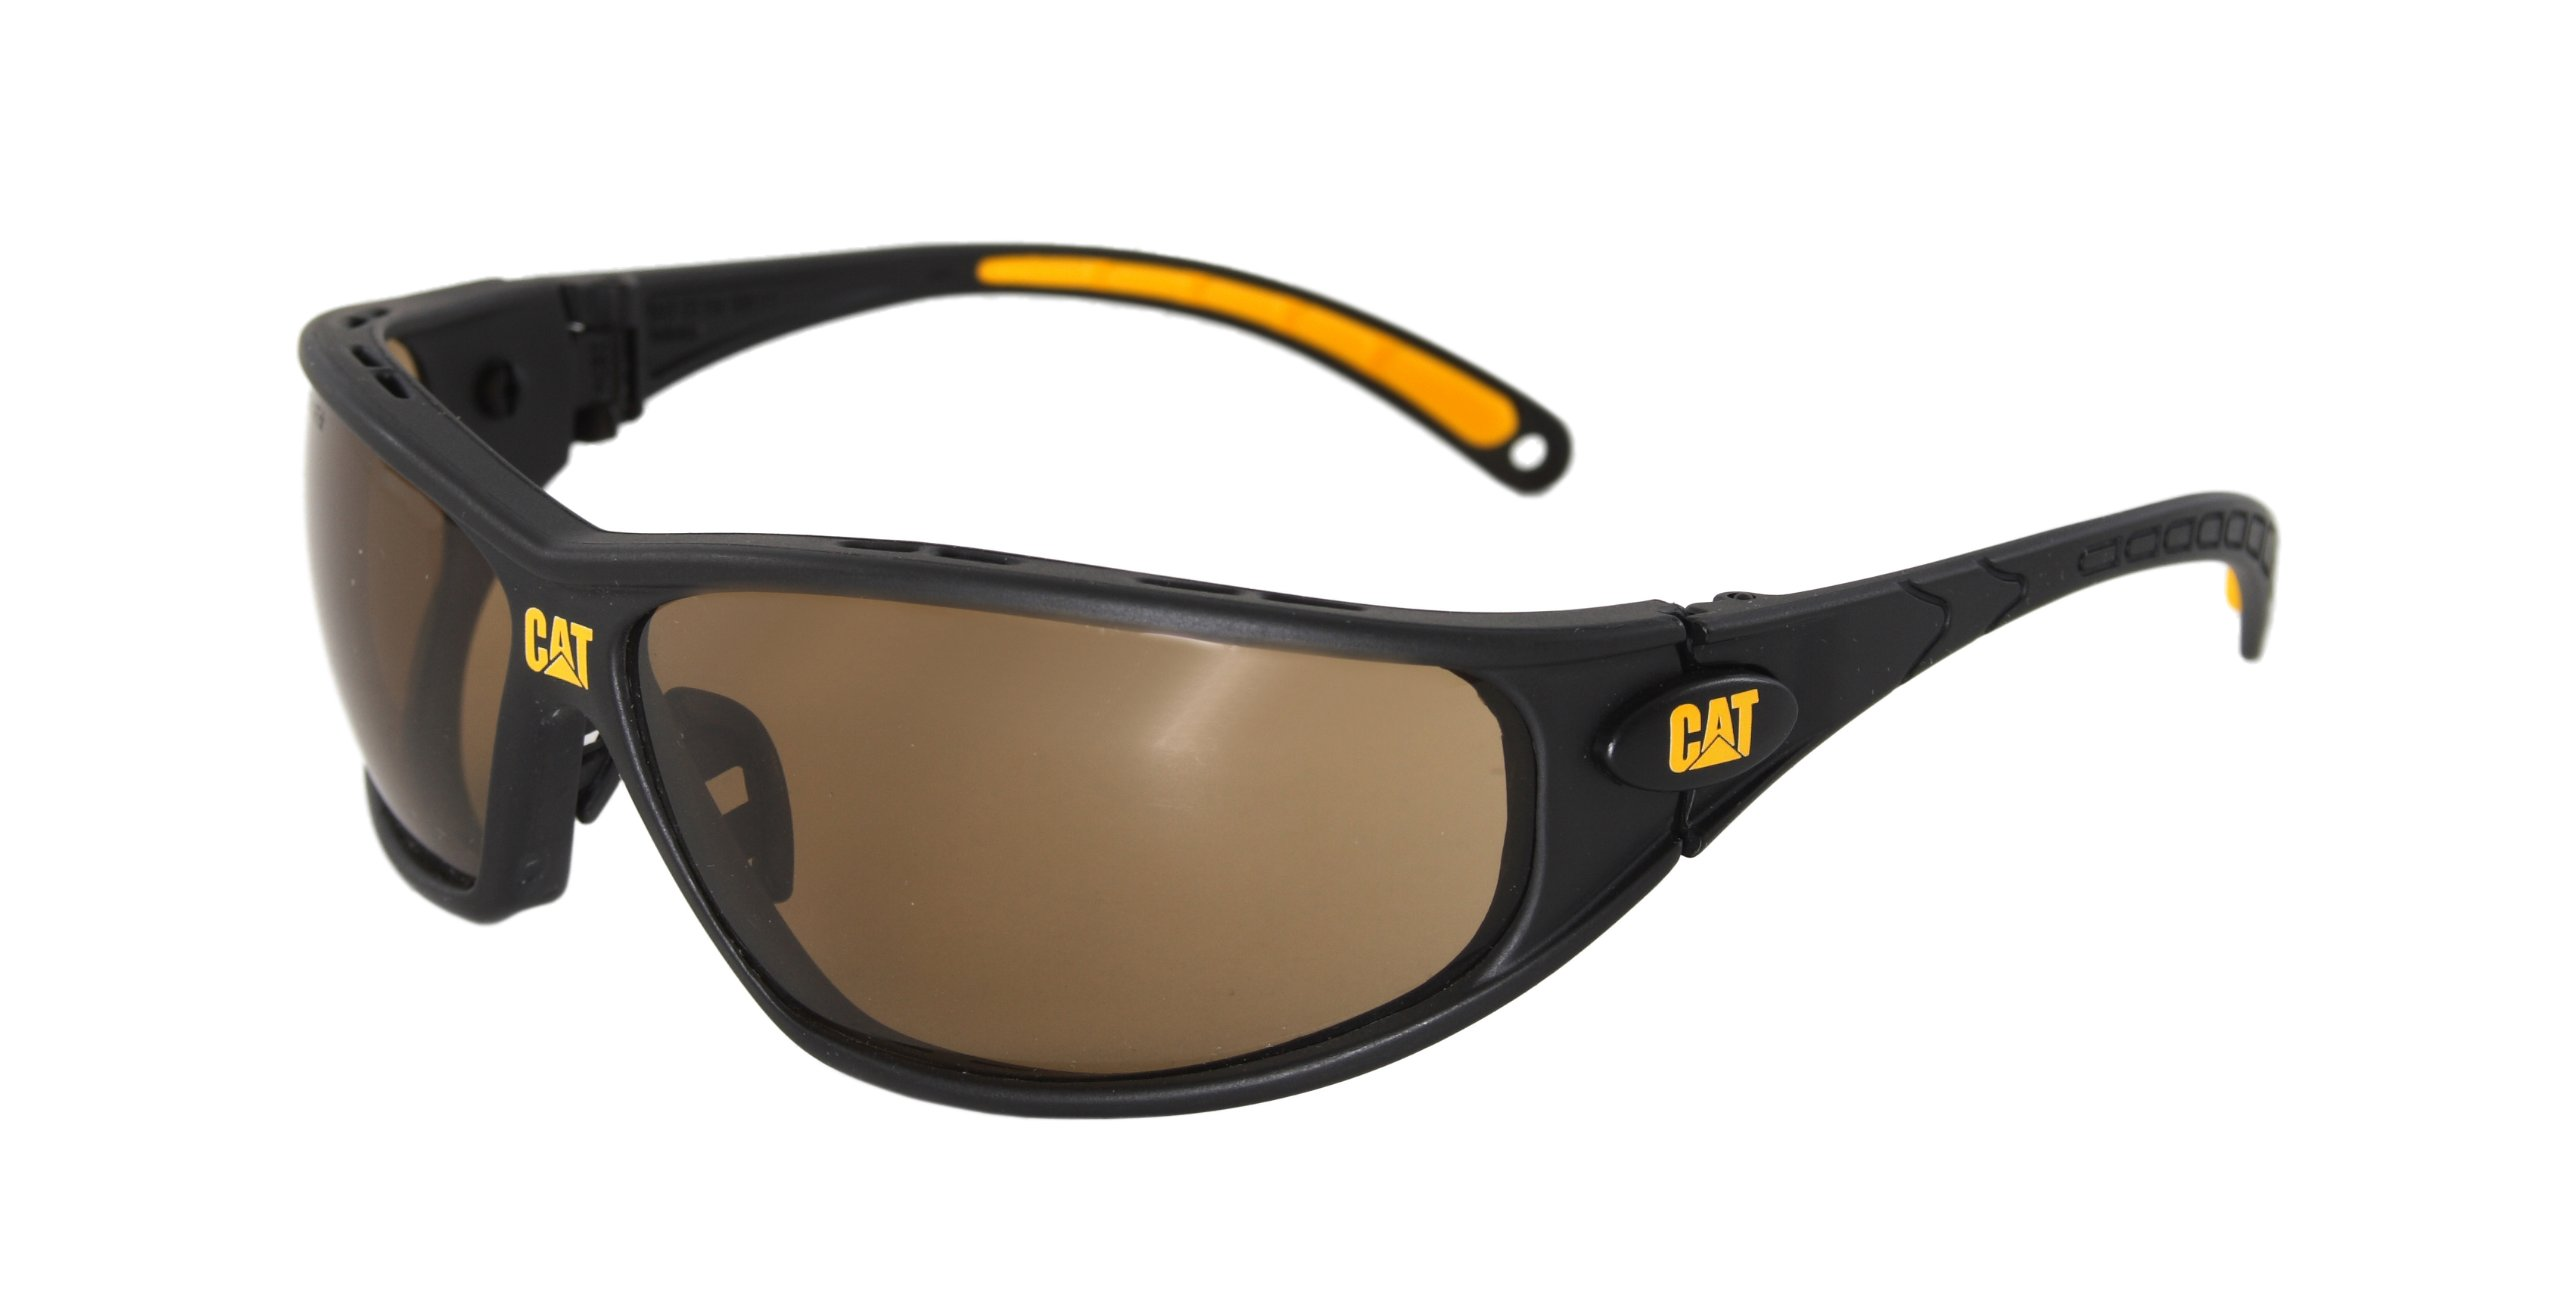 Caterpillar CSA-TREAD-103-AF Filter Category 5-2.5 Brown Lens Safety Glasses, Small